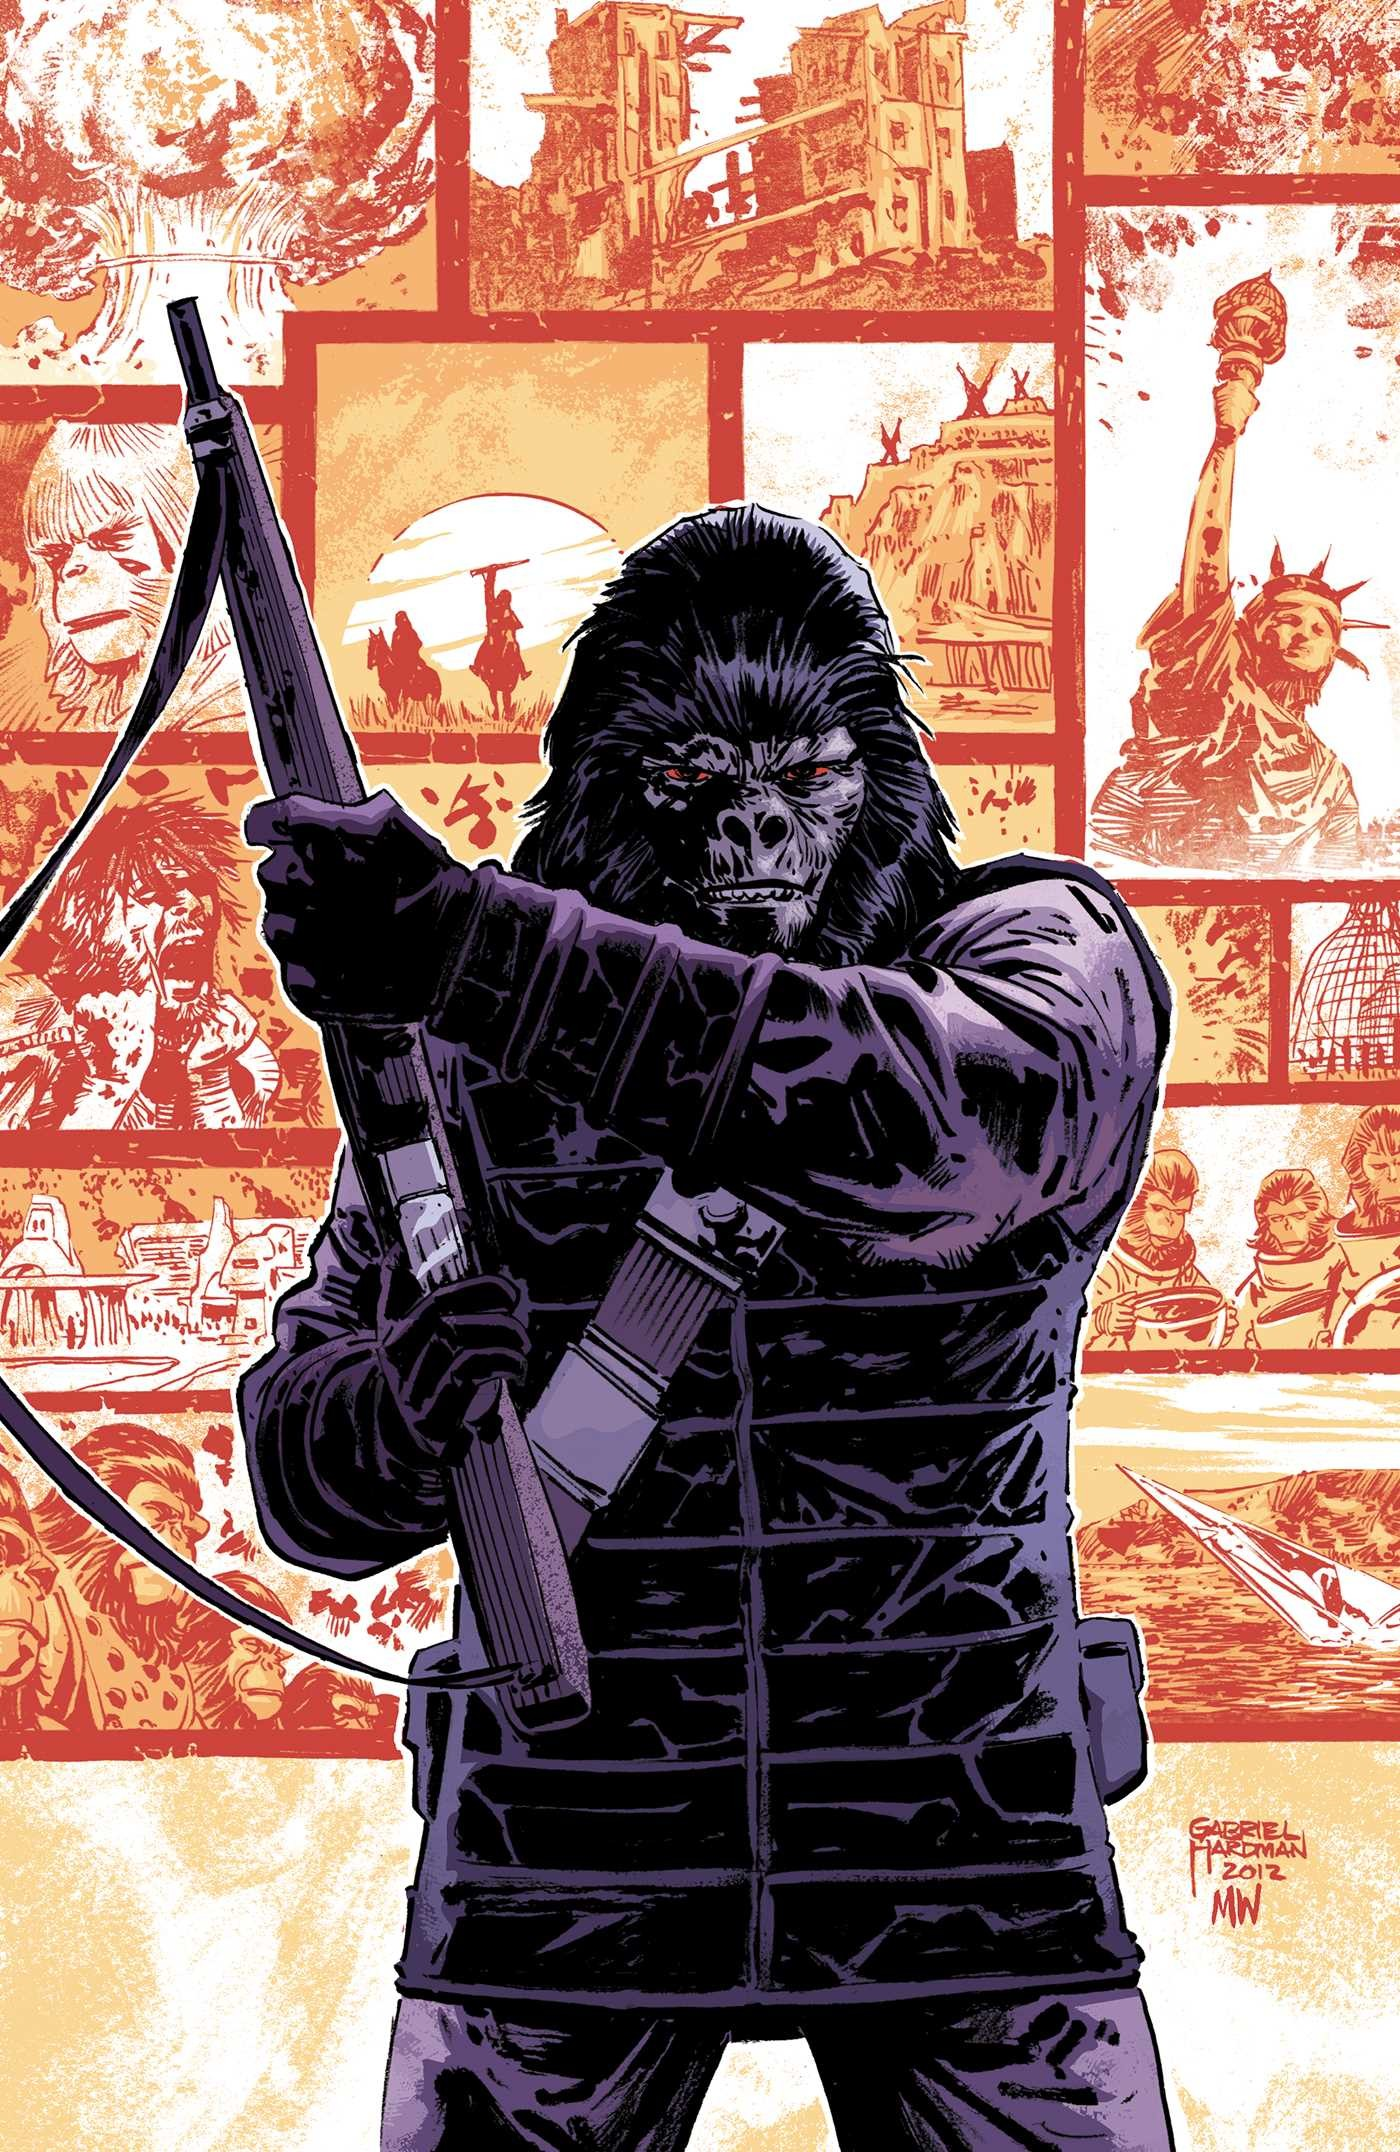 planet of the apes artist tribute book by pierre boulle alex ross